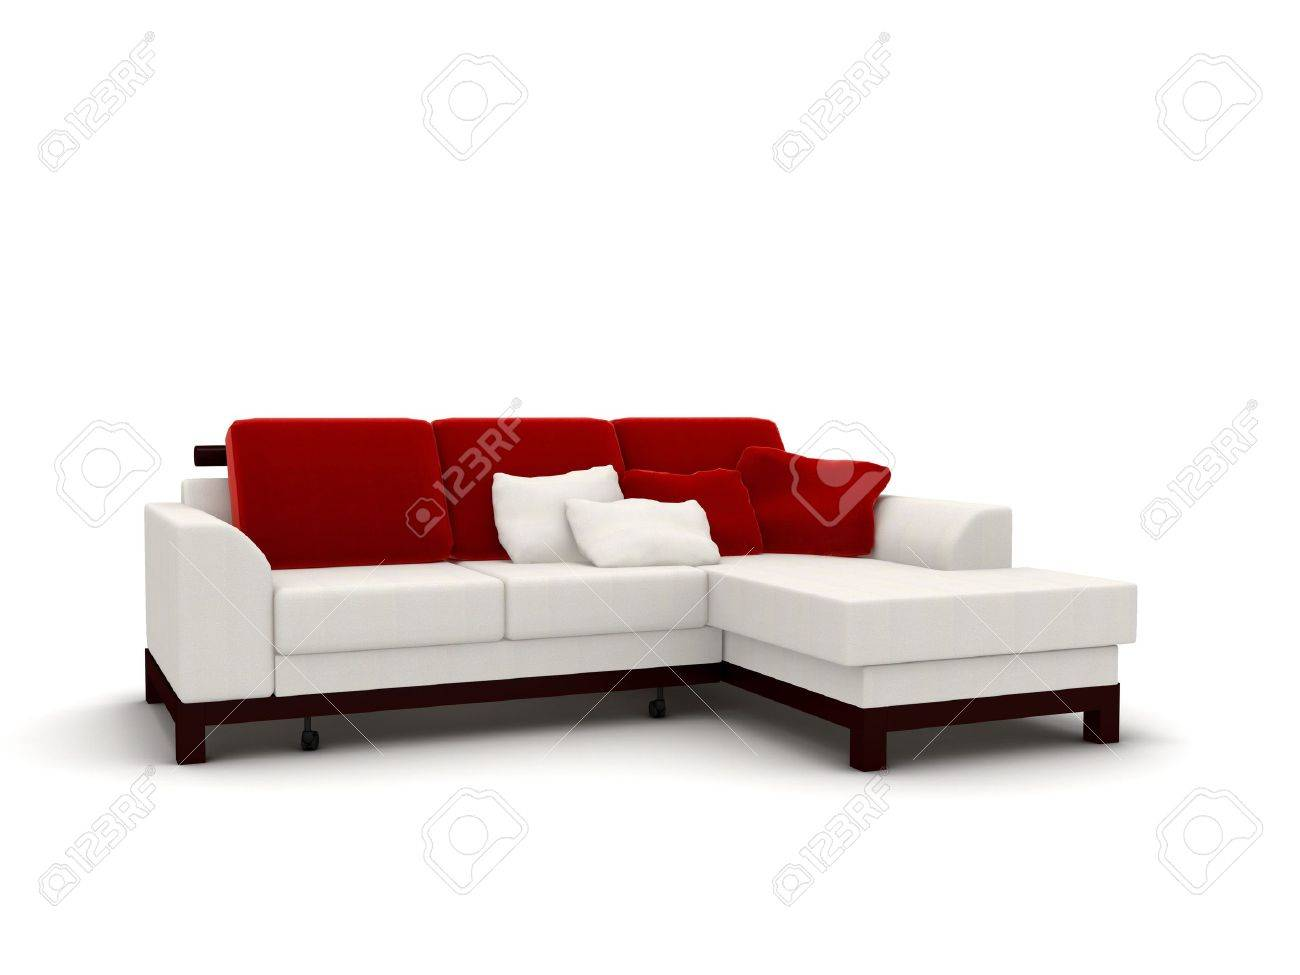 3d Rendering Isolated White Sofa With Red Pillows Stock Photo   5266006